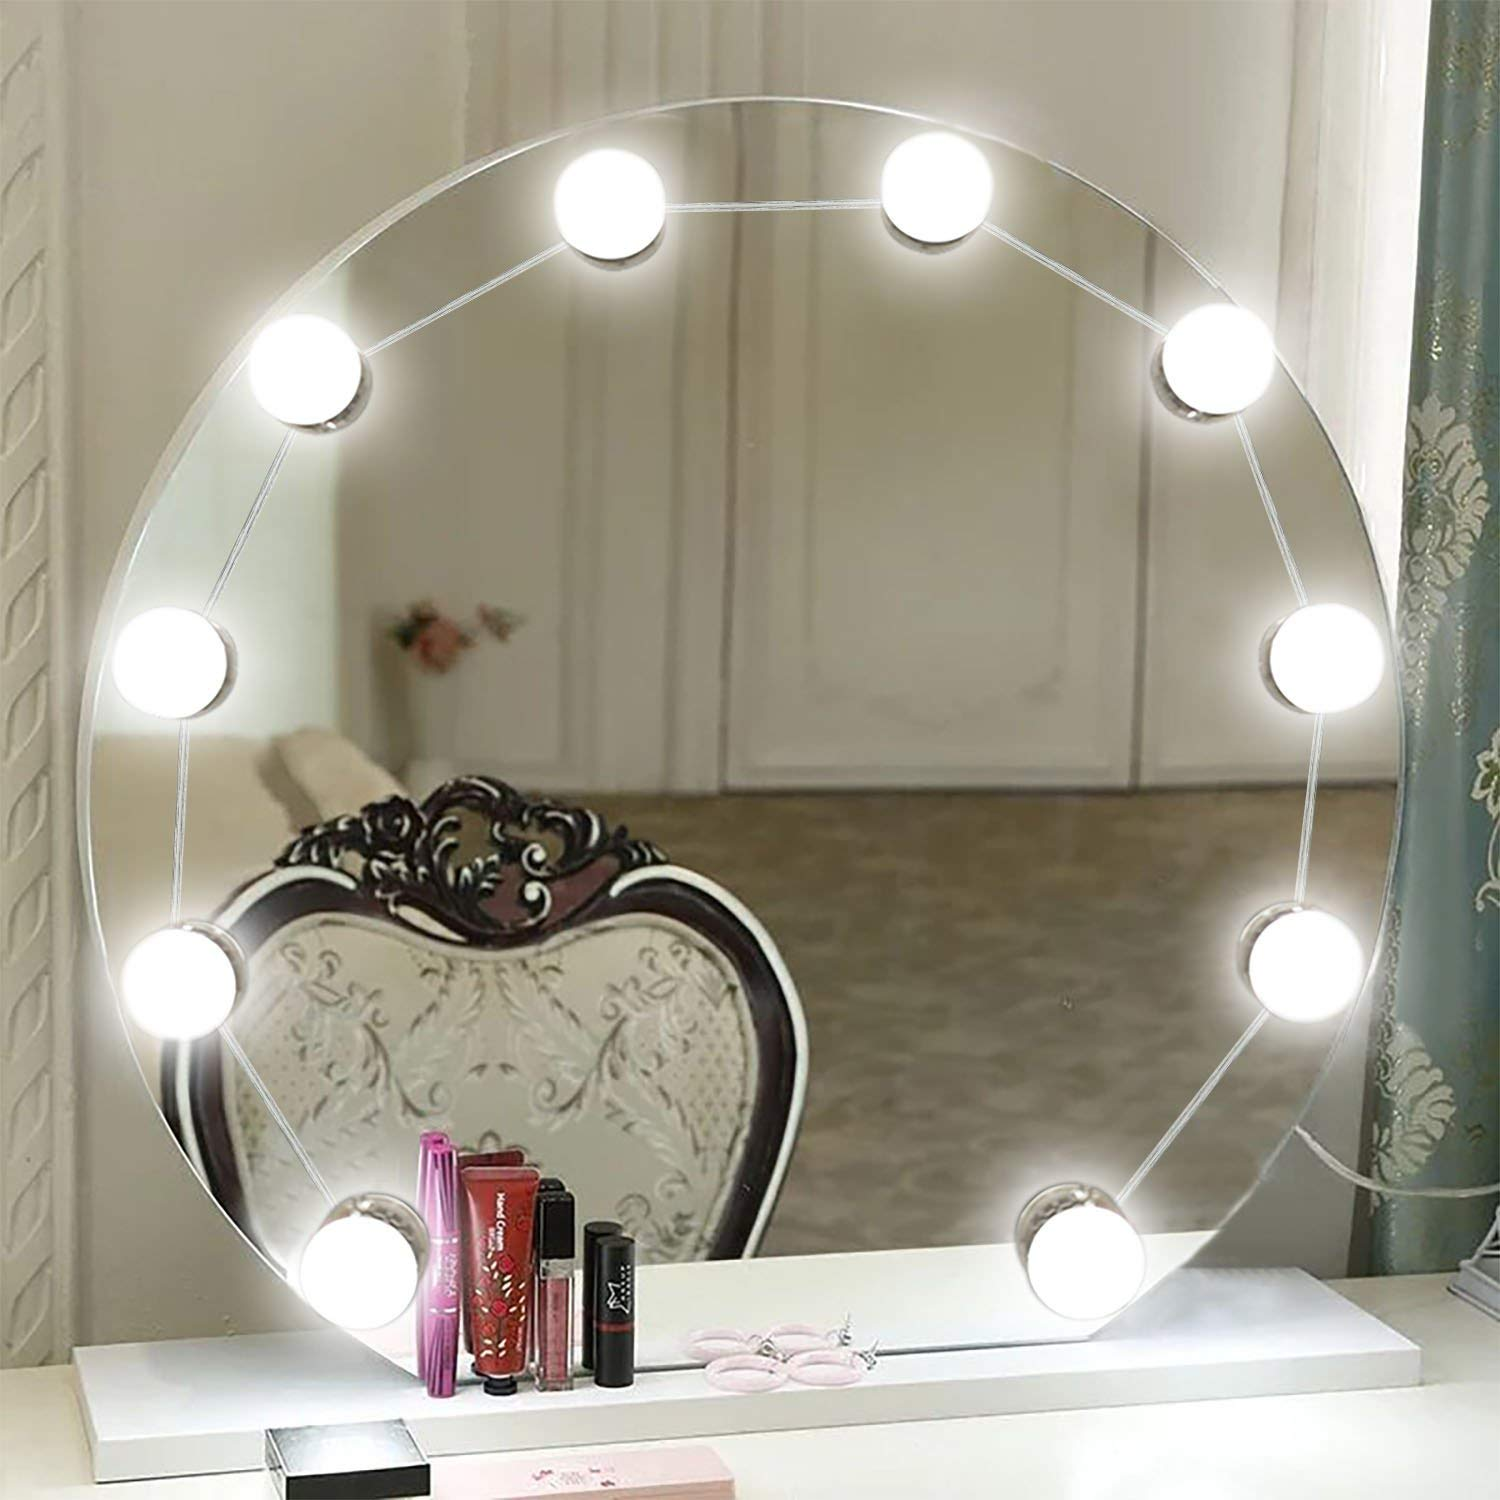 Kmashi Vanity Mirror Lights Led Makeup Vanity Light Kit